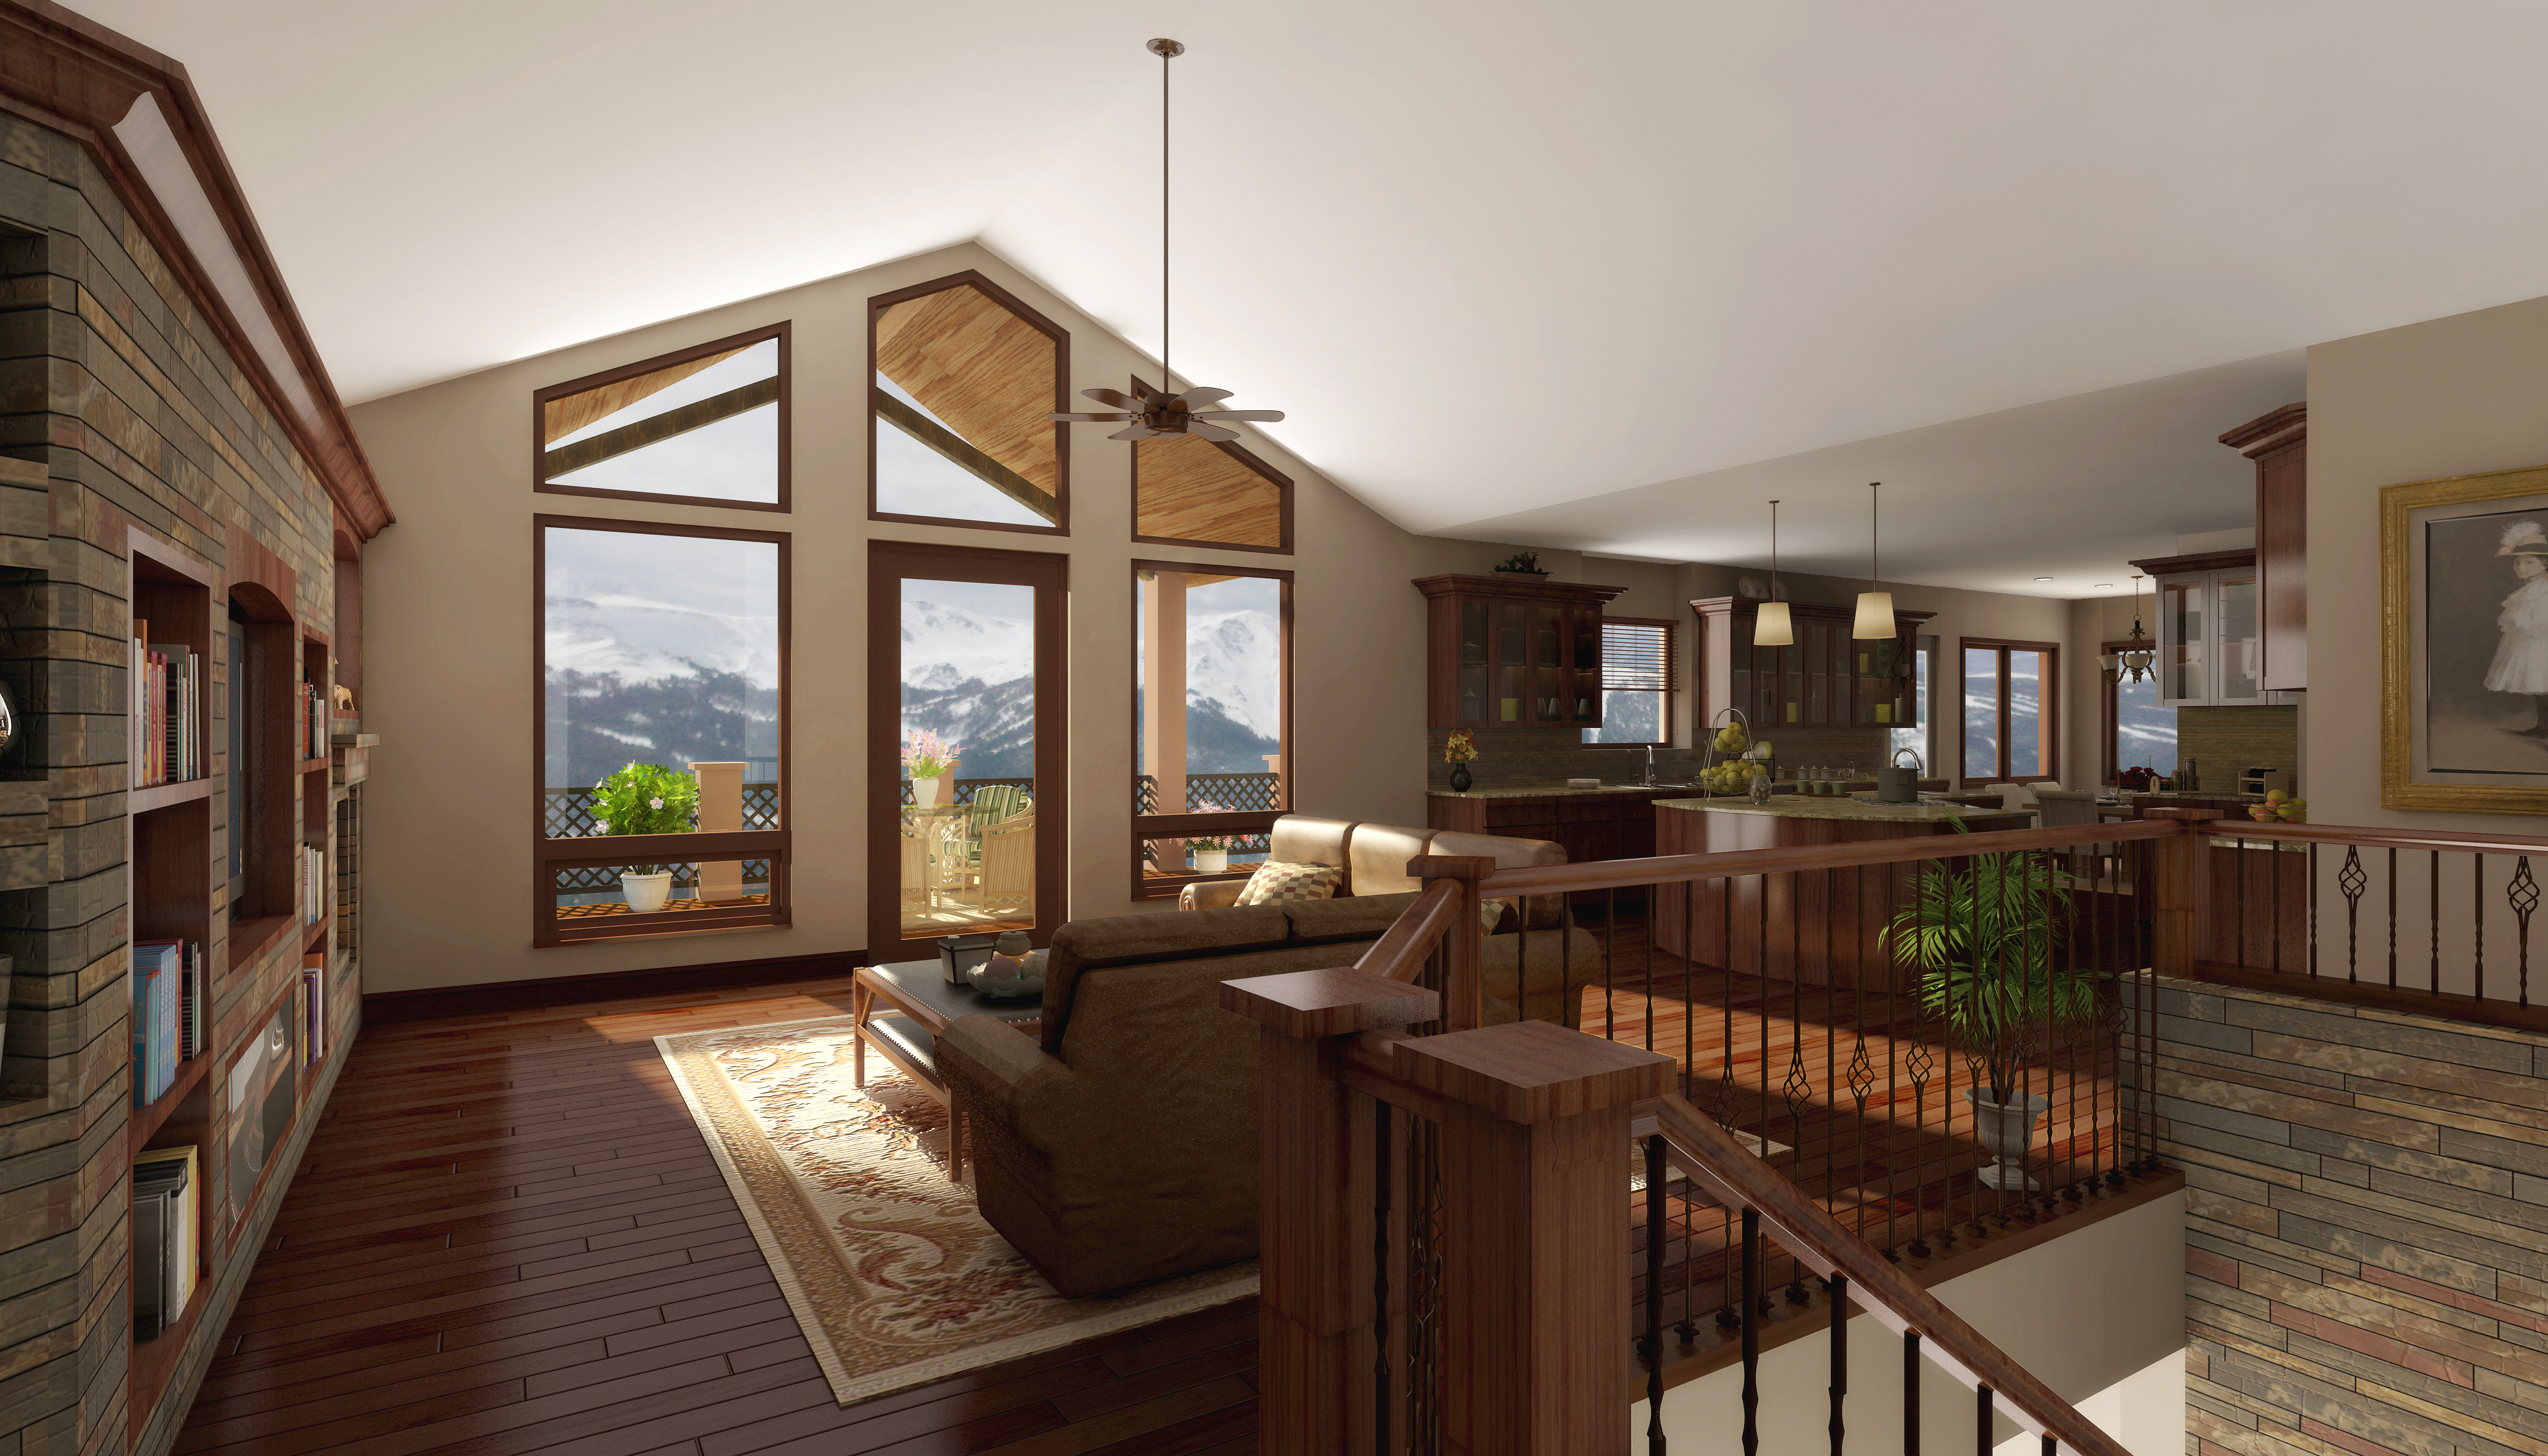 Custom homes building lots castle rock denver area for Open floor plans with vaulted ceilings